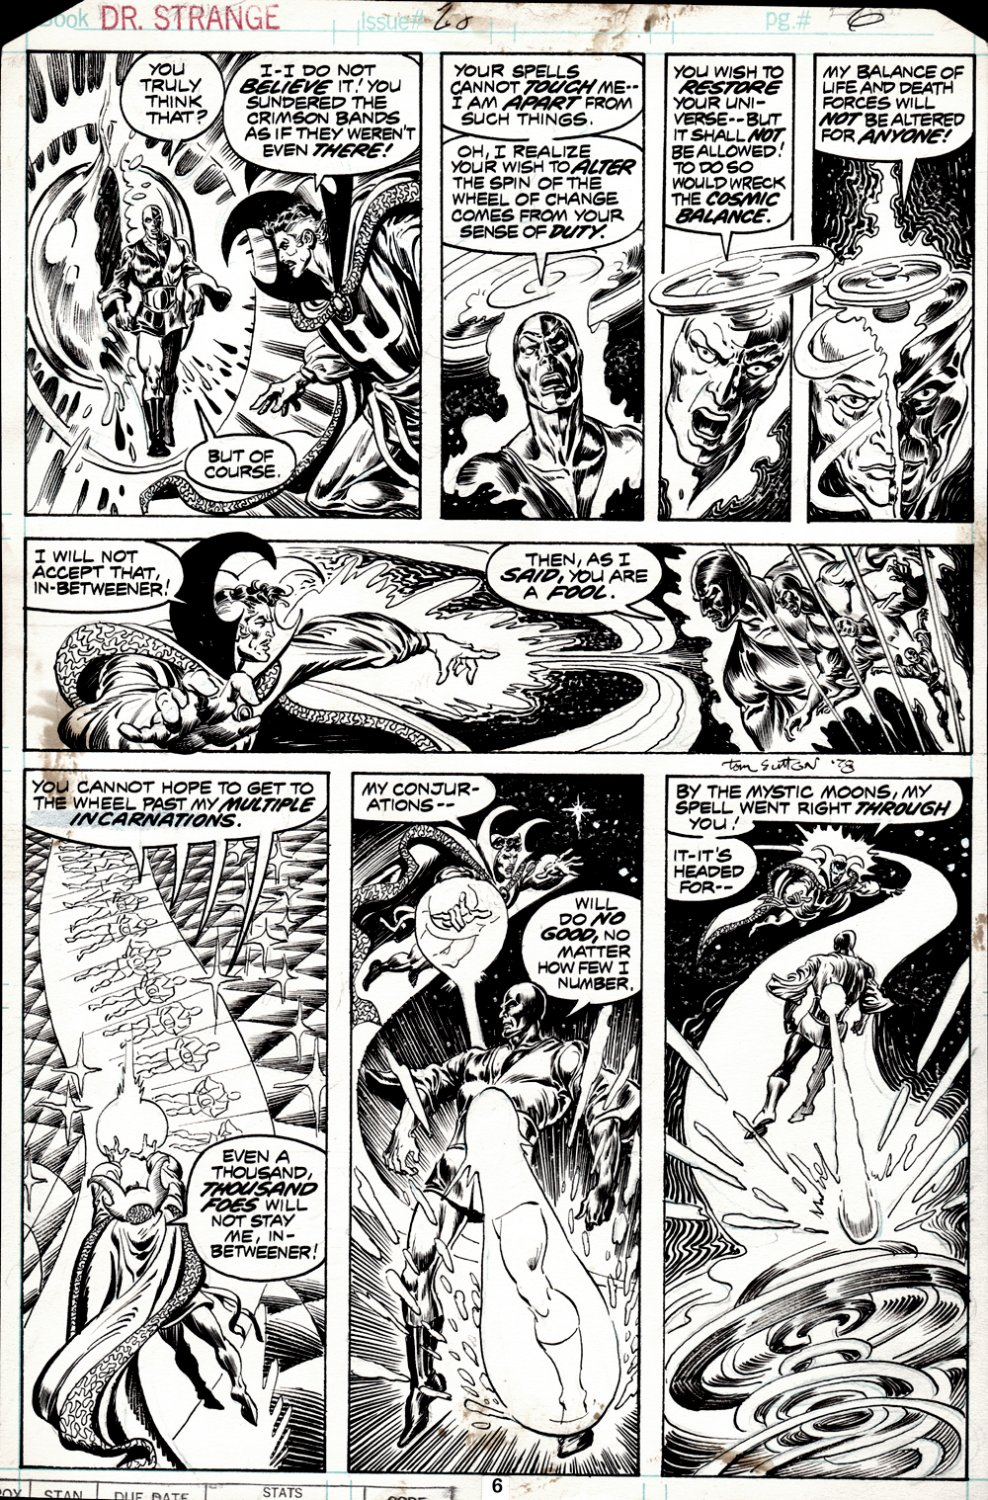 Doctor Strange #28 p 6 (DR. STRANGE BATTLES THE IN-BETWEENER IN EVERY PANEL!) 1977